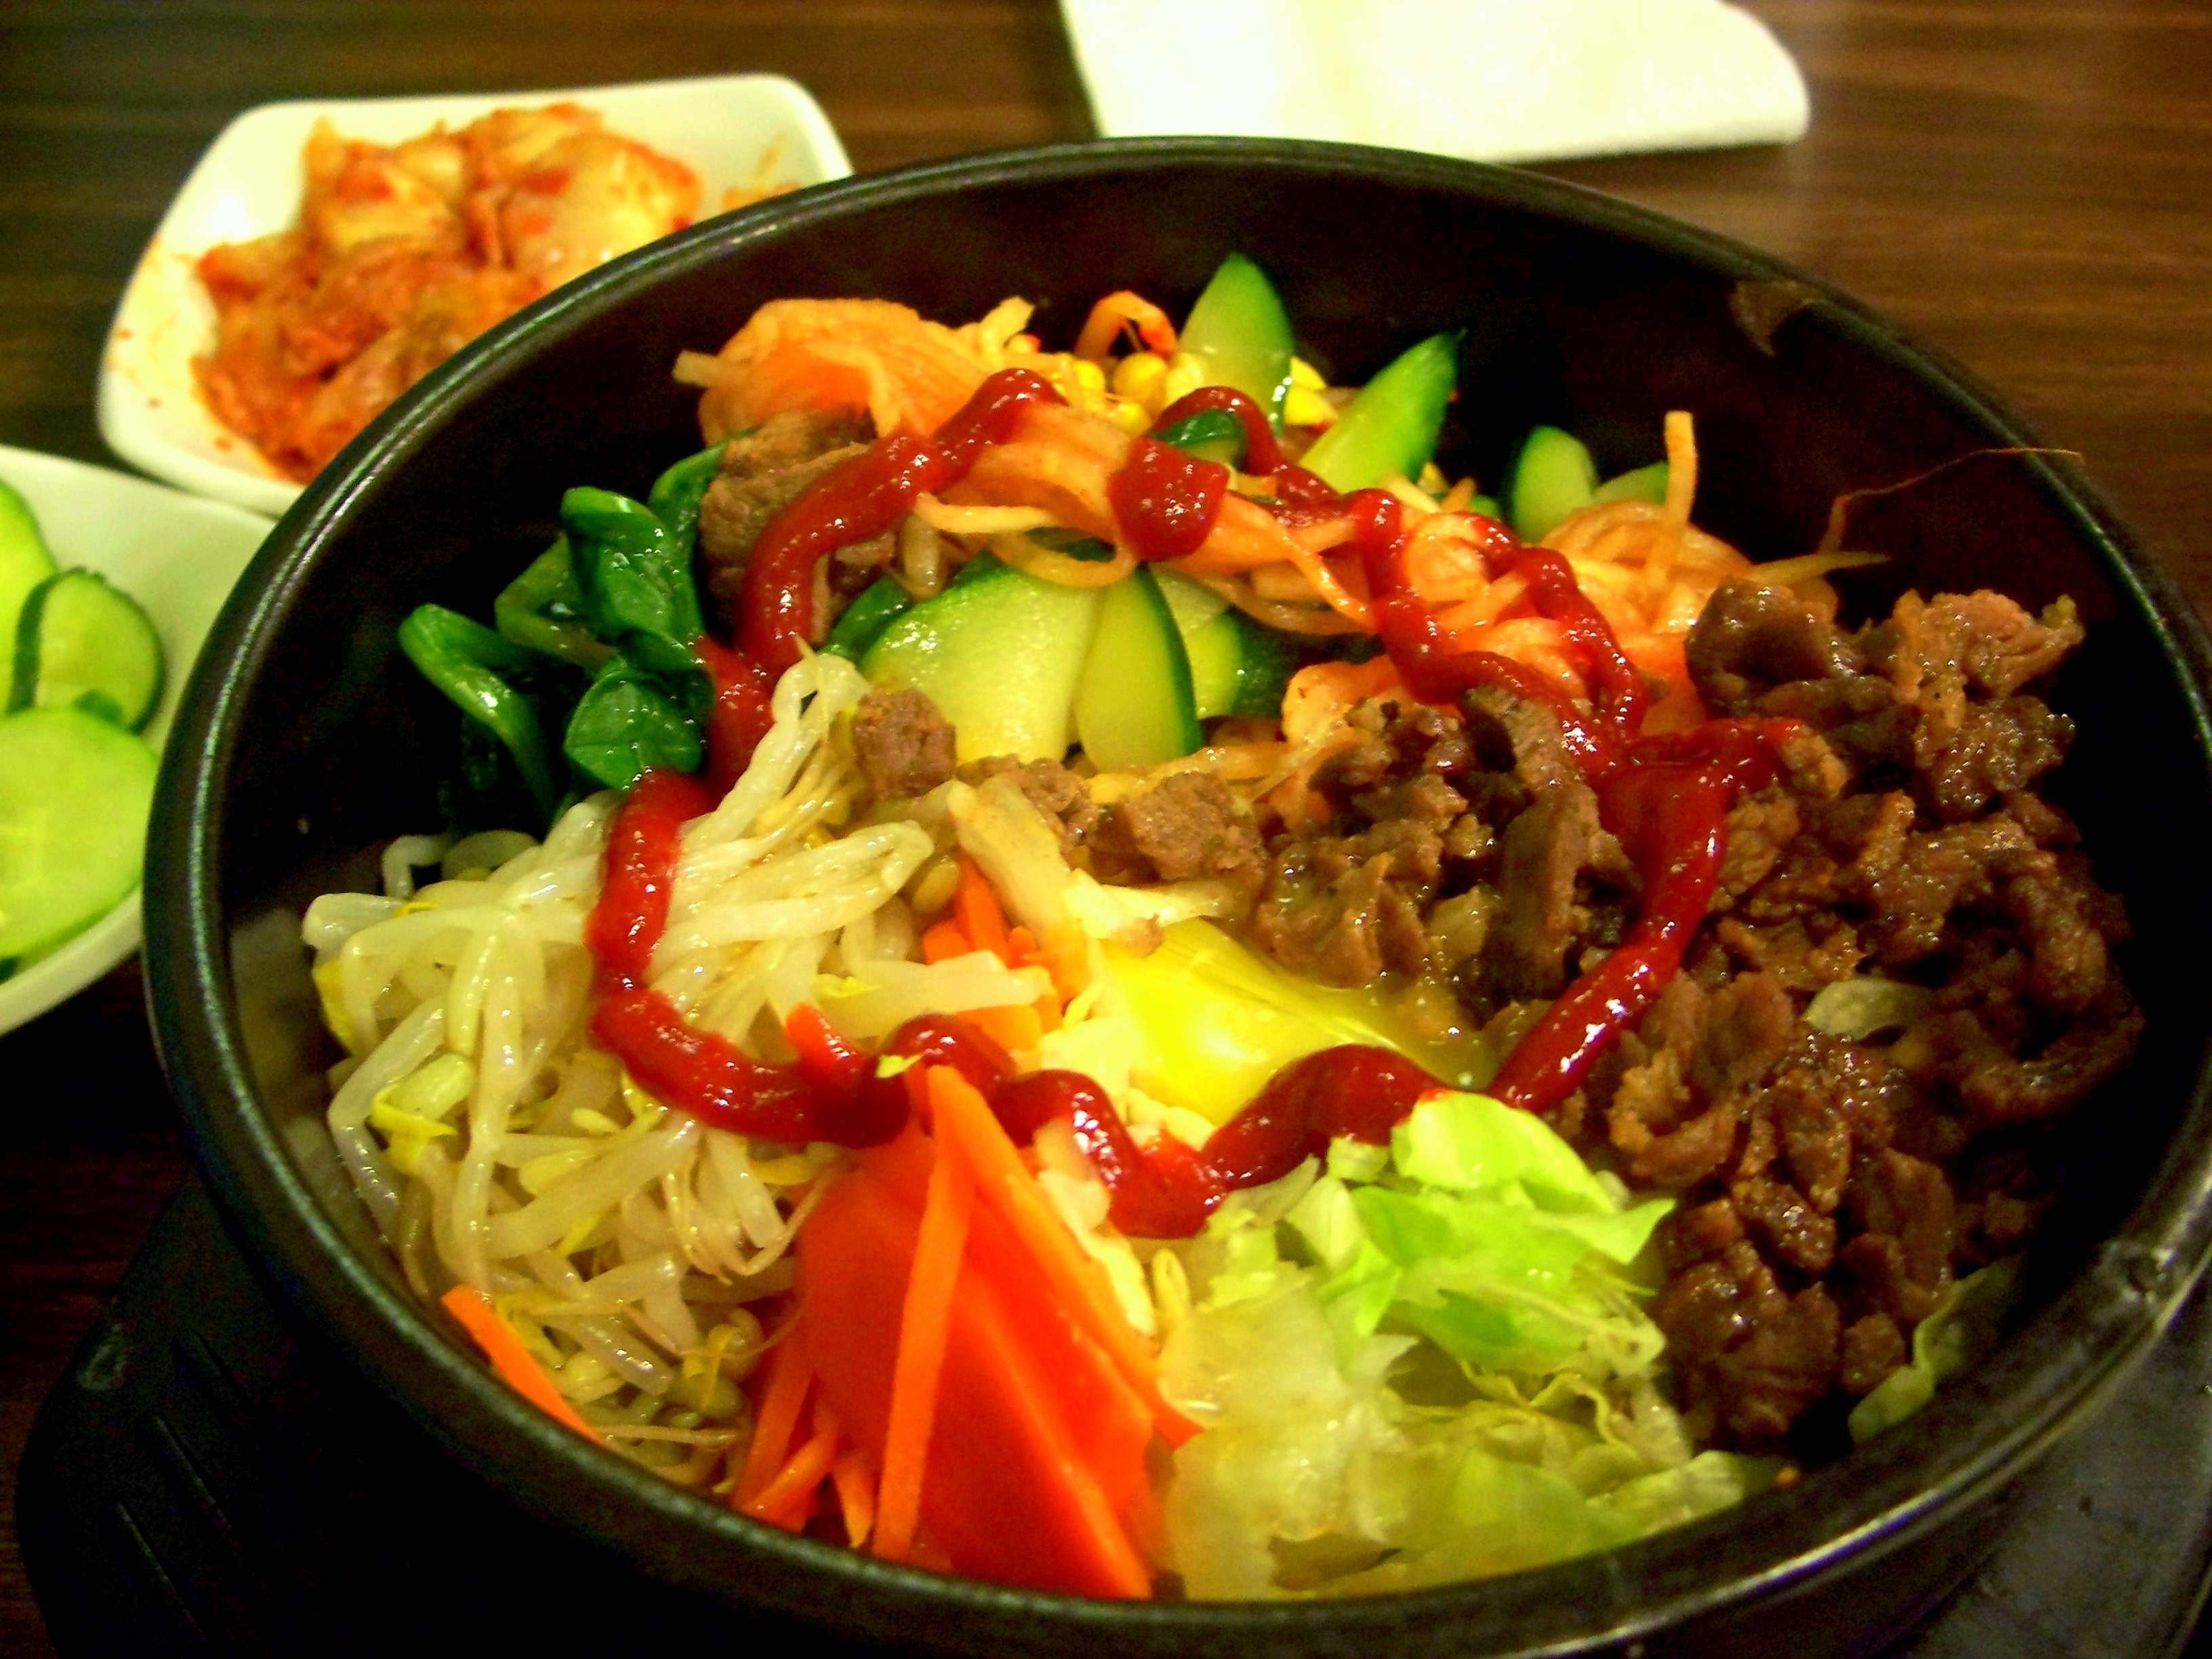 Korean Food Near Sawtelle And Olympic